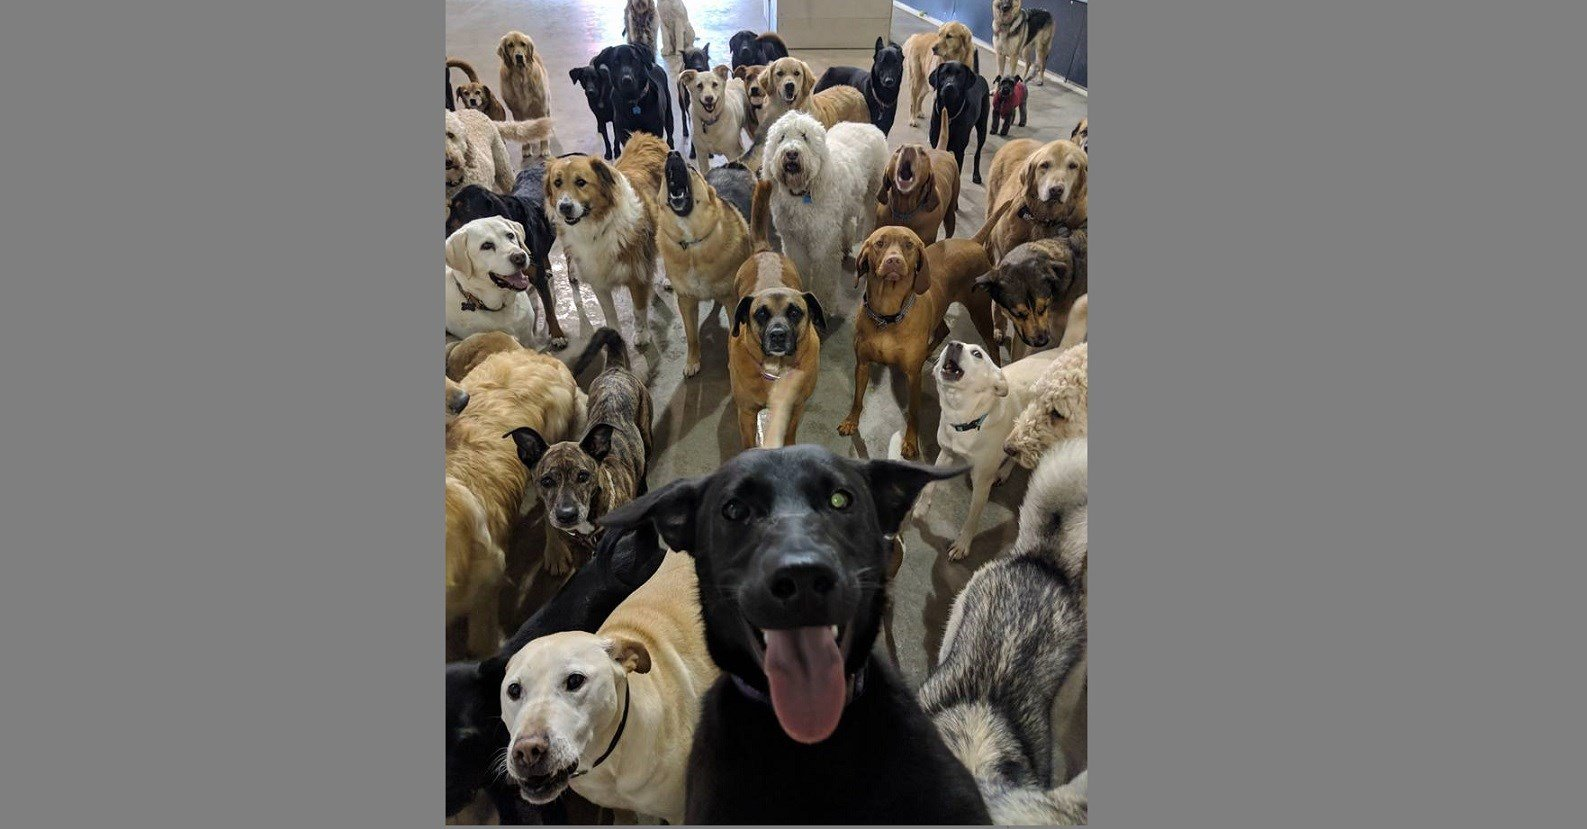 A doggie daycare near Cincinnati snapped a photo that looks like the best dog selfie ever!